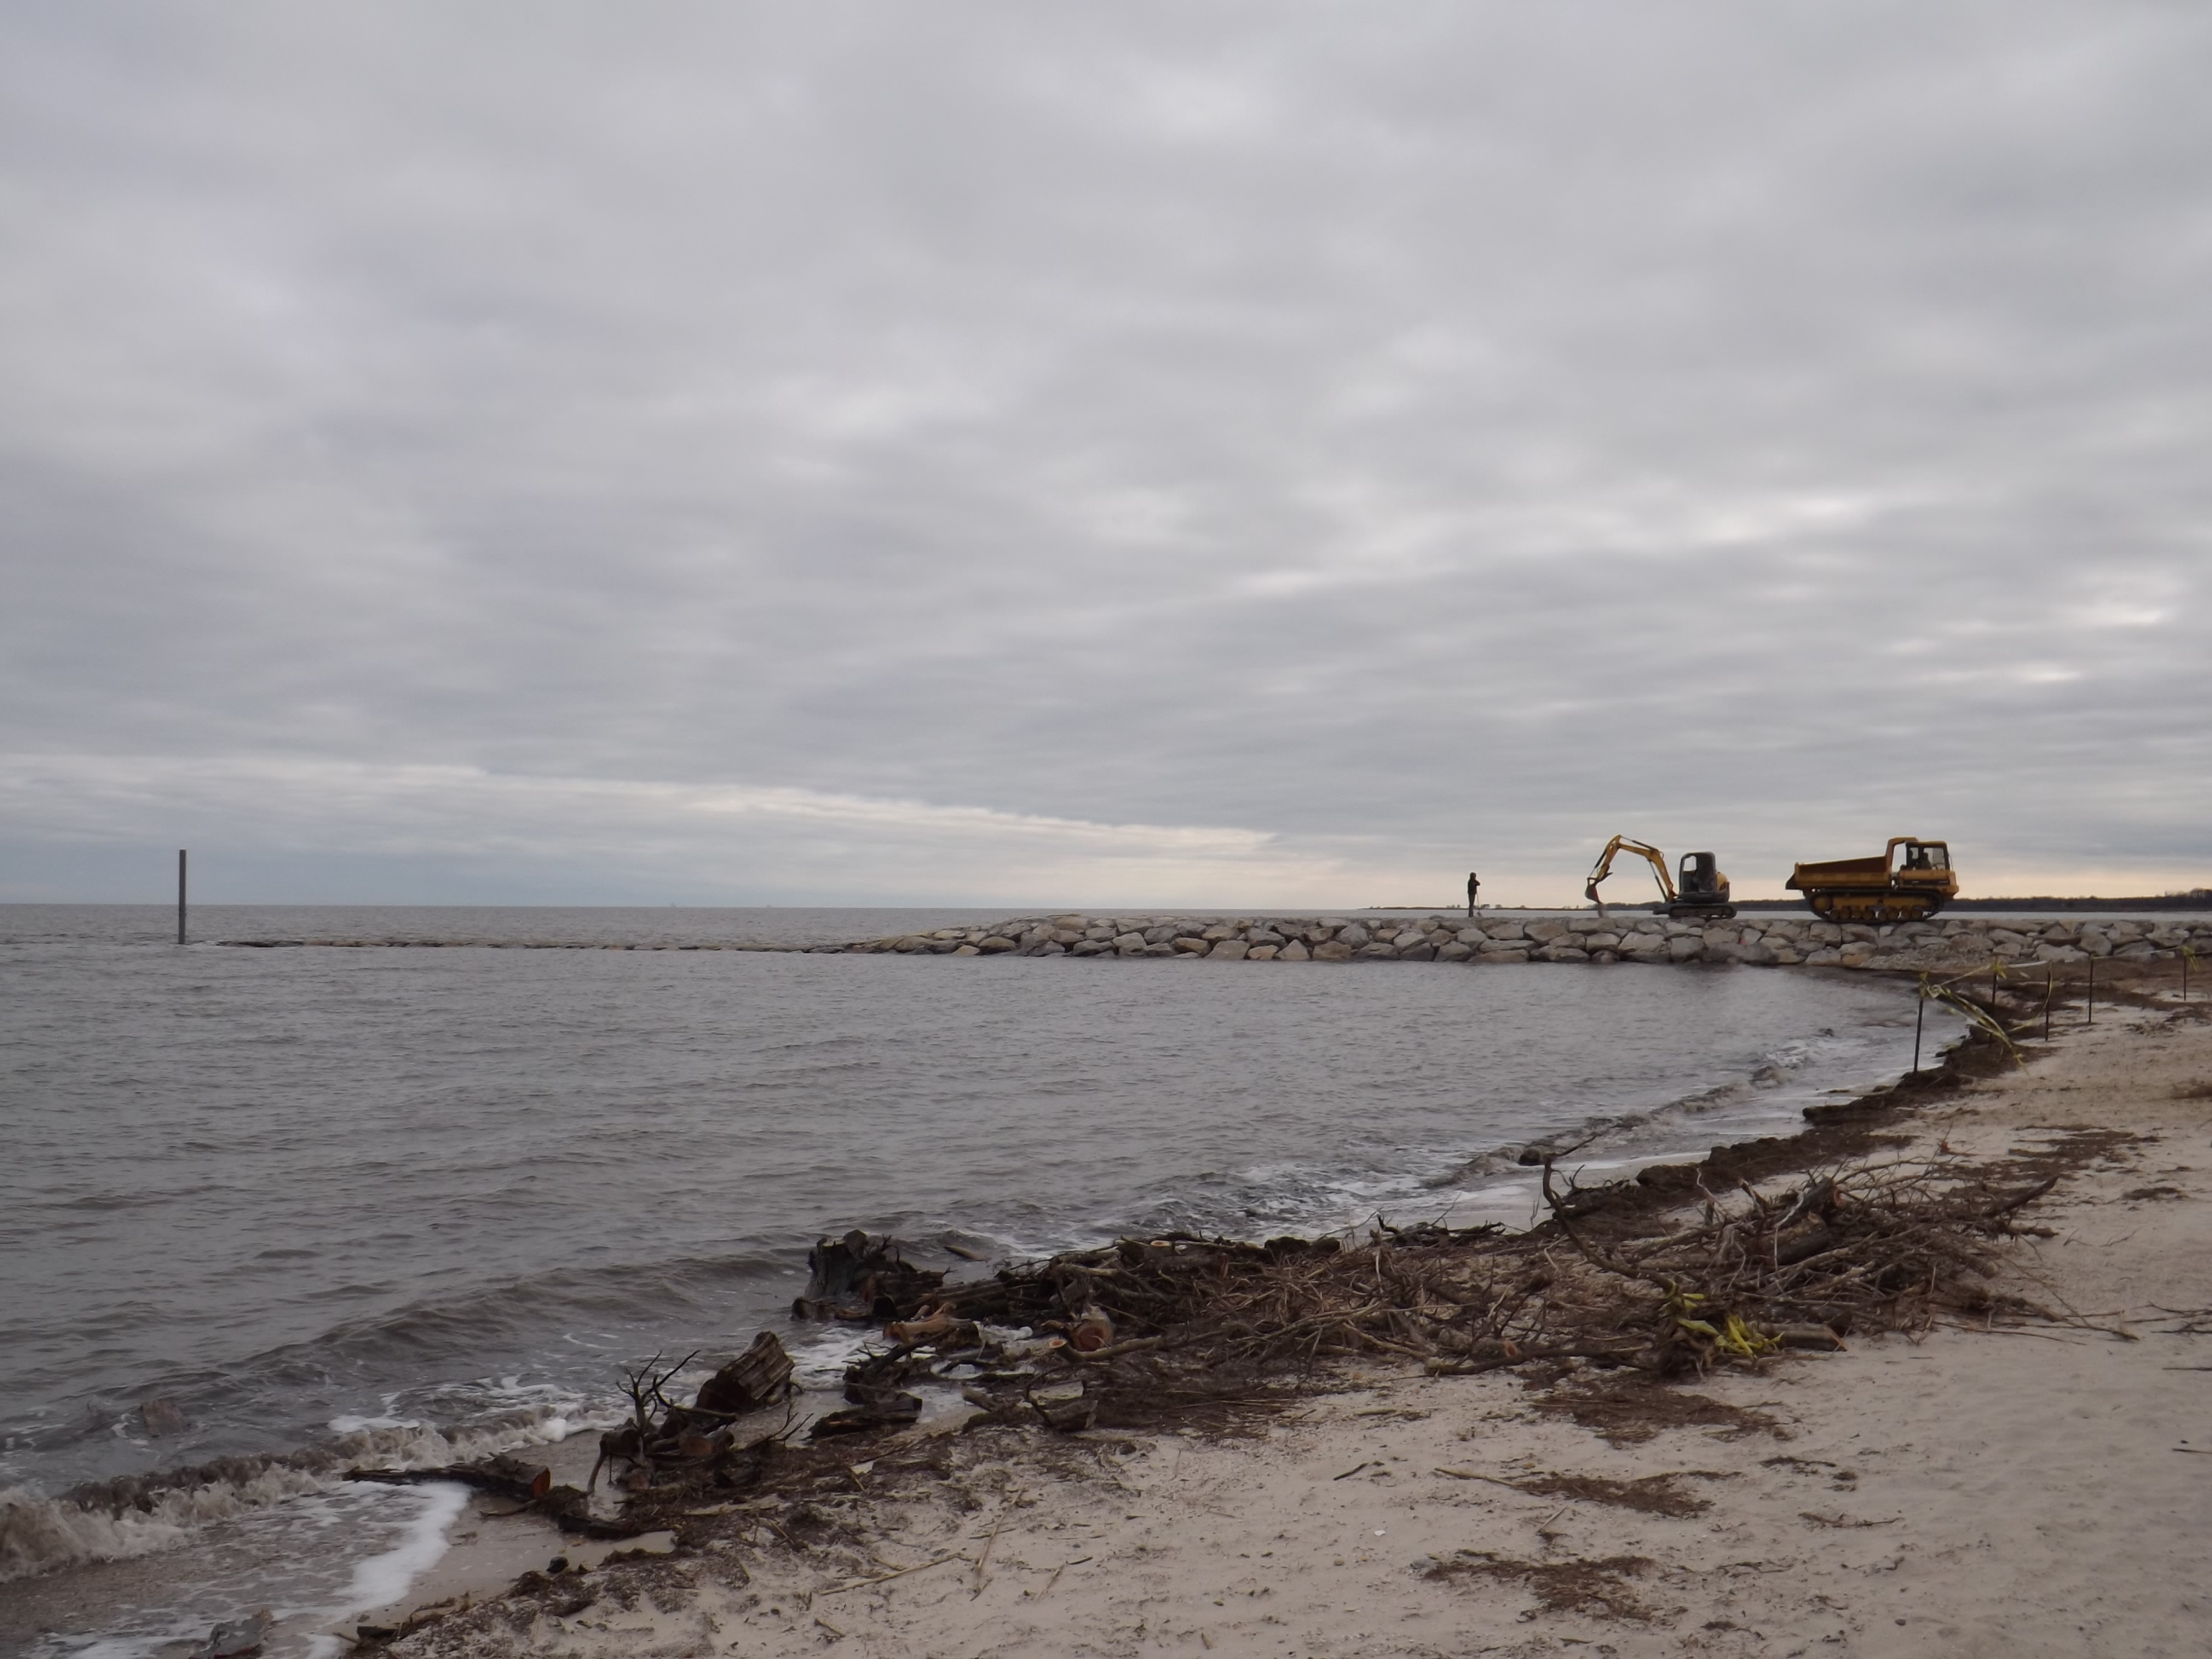 Bowers beach, jetty project, murderkill river, delaware, kent county